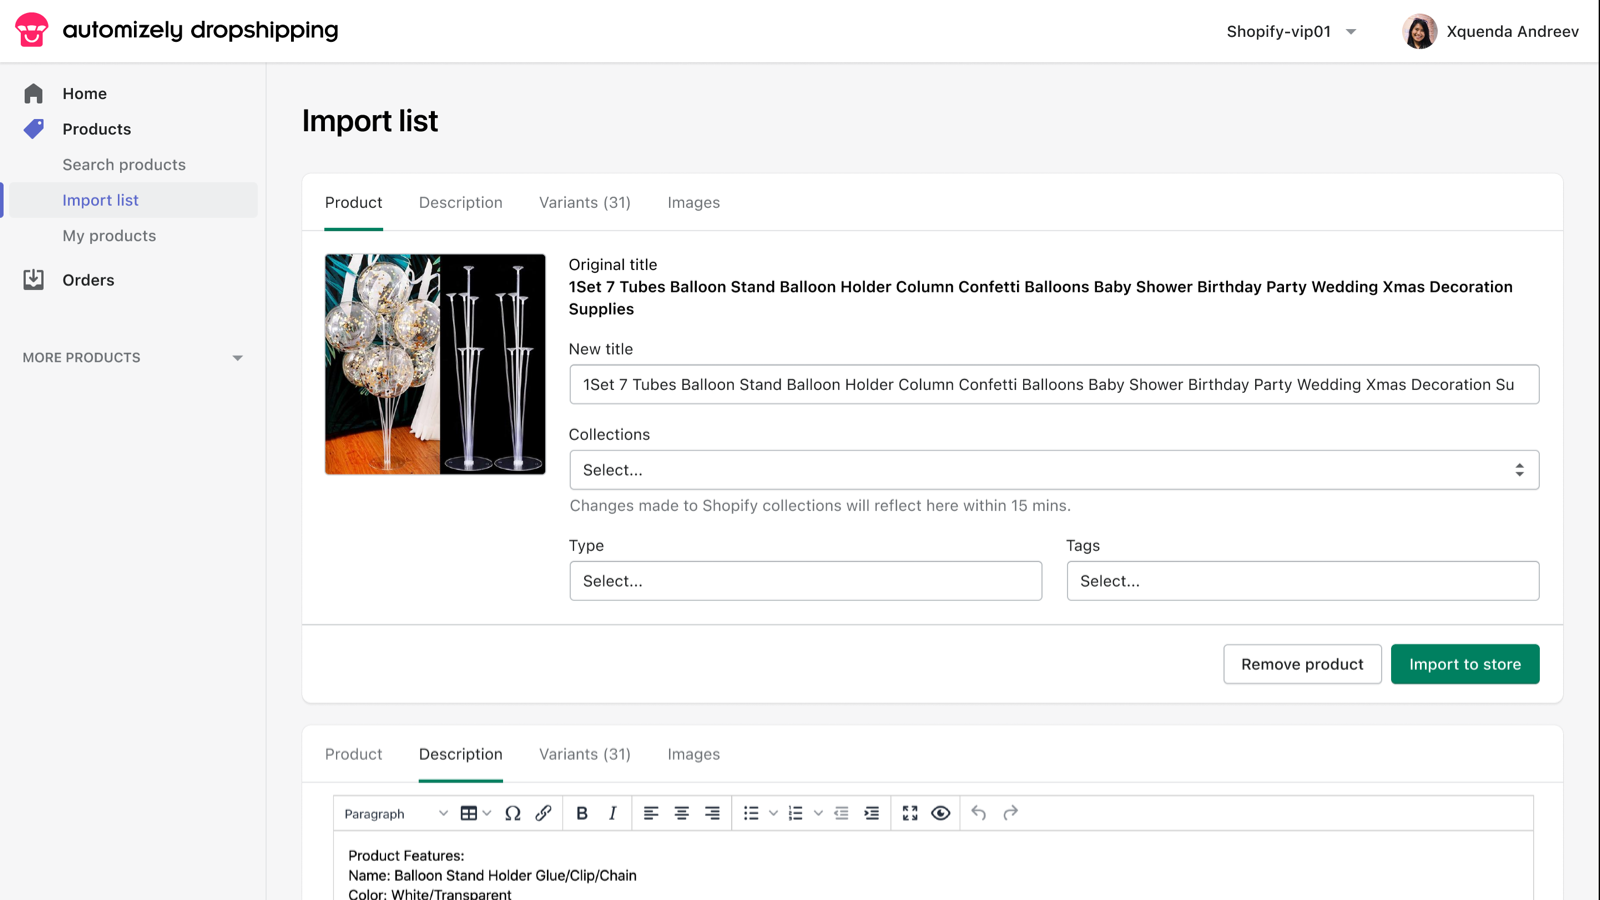 Edit product information and import to store